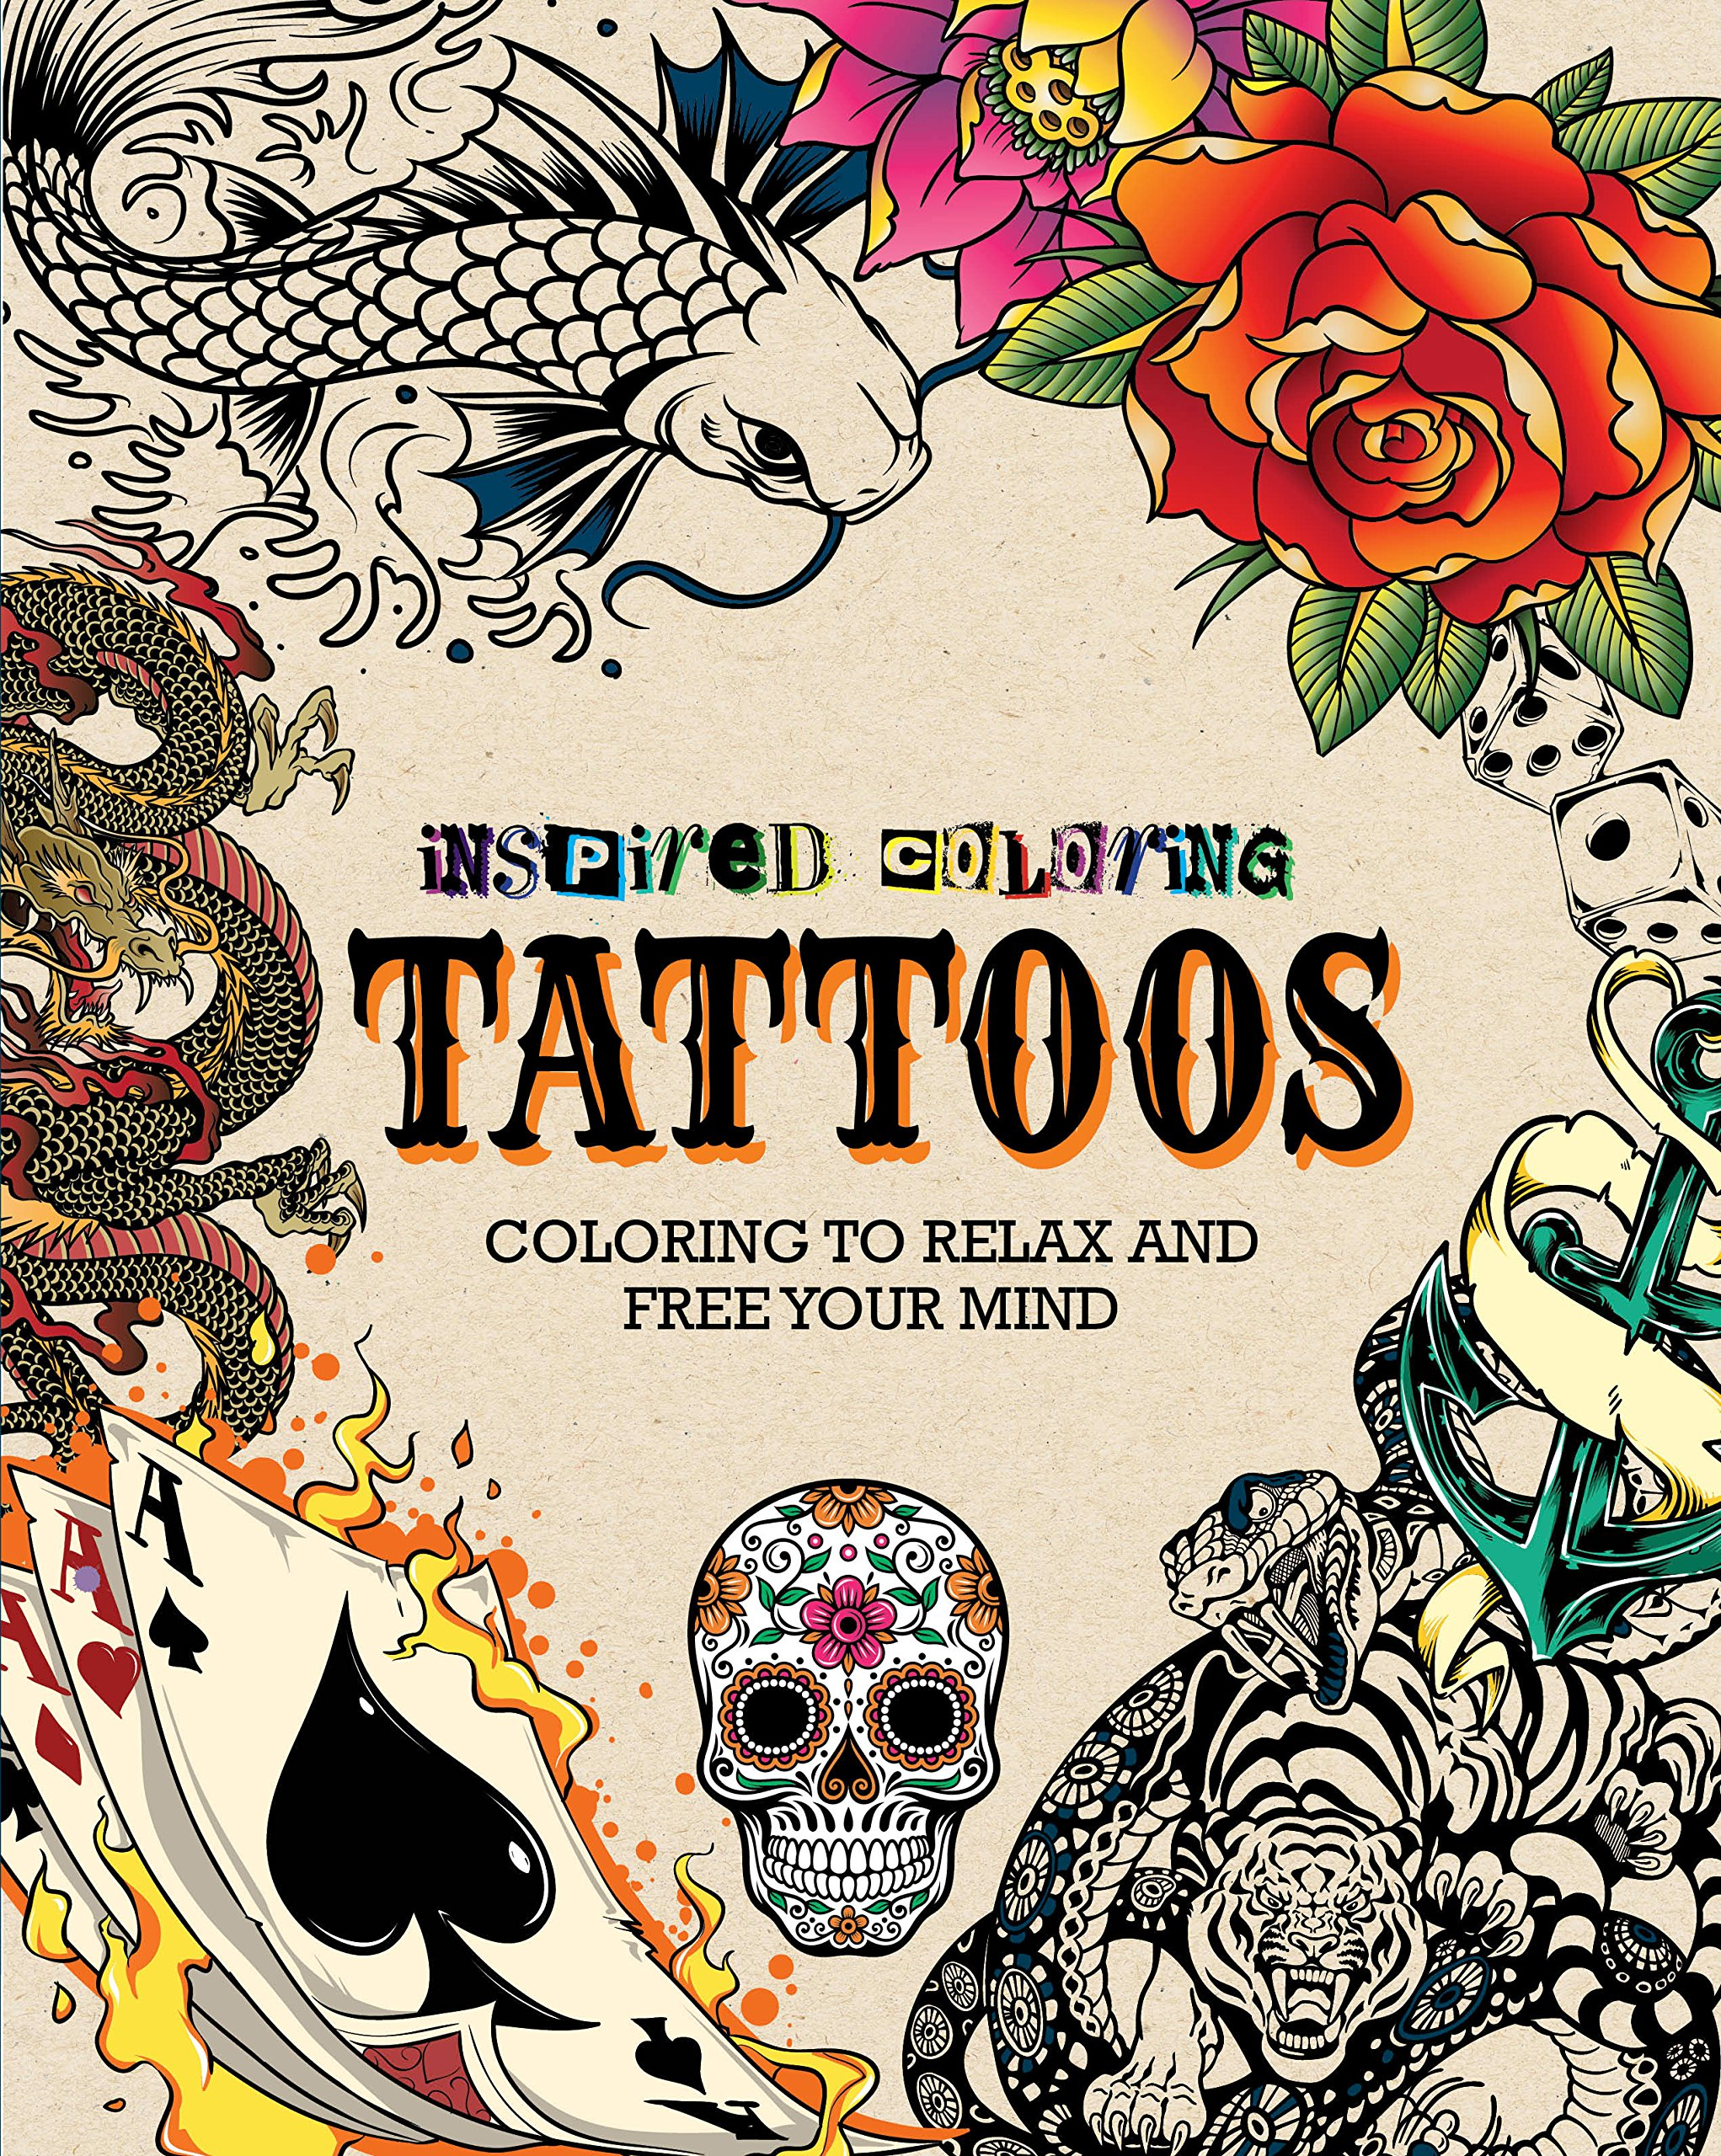 The coloring book tattoo - Tattoos Inspired Coloring Parragon Books 9781472392640 Amazon Com Books